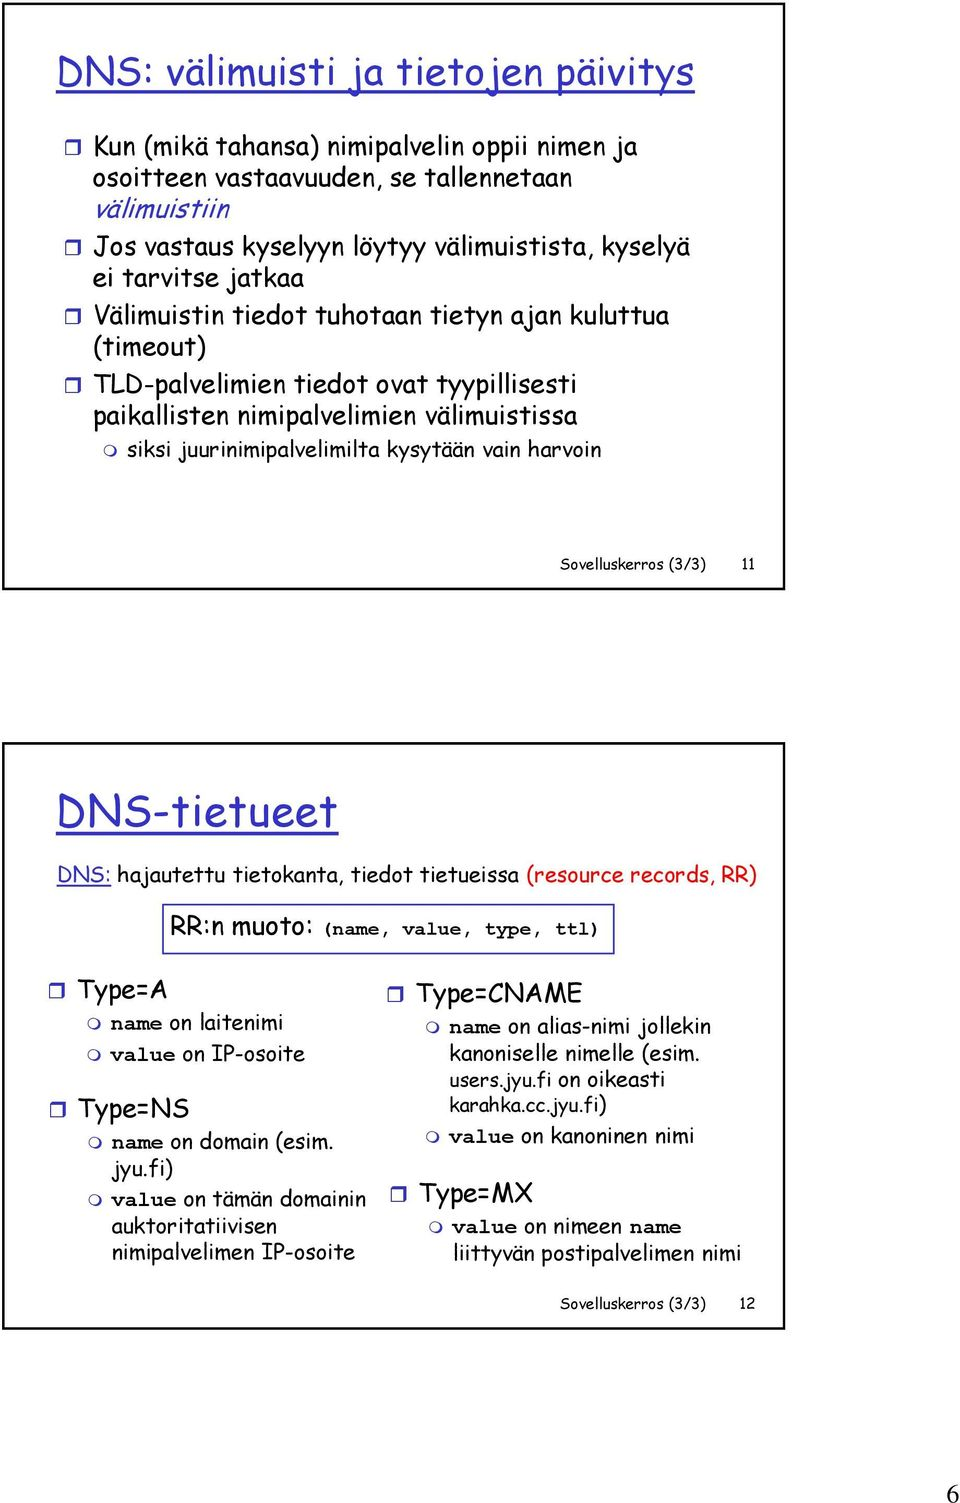 harvoin Sovelluskerros (3/3) 11 DNS-tietueet DNS: hajautettu tietokanta, tiedot tietueissa (resource records, RR) RR:n muoto: (name, value, type, ttl) Type=A name on laitenimi value on IP-osoite